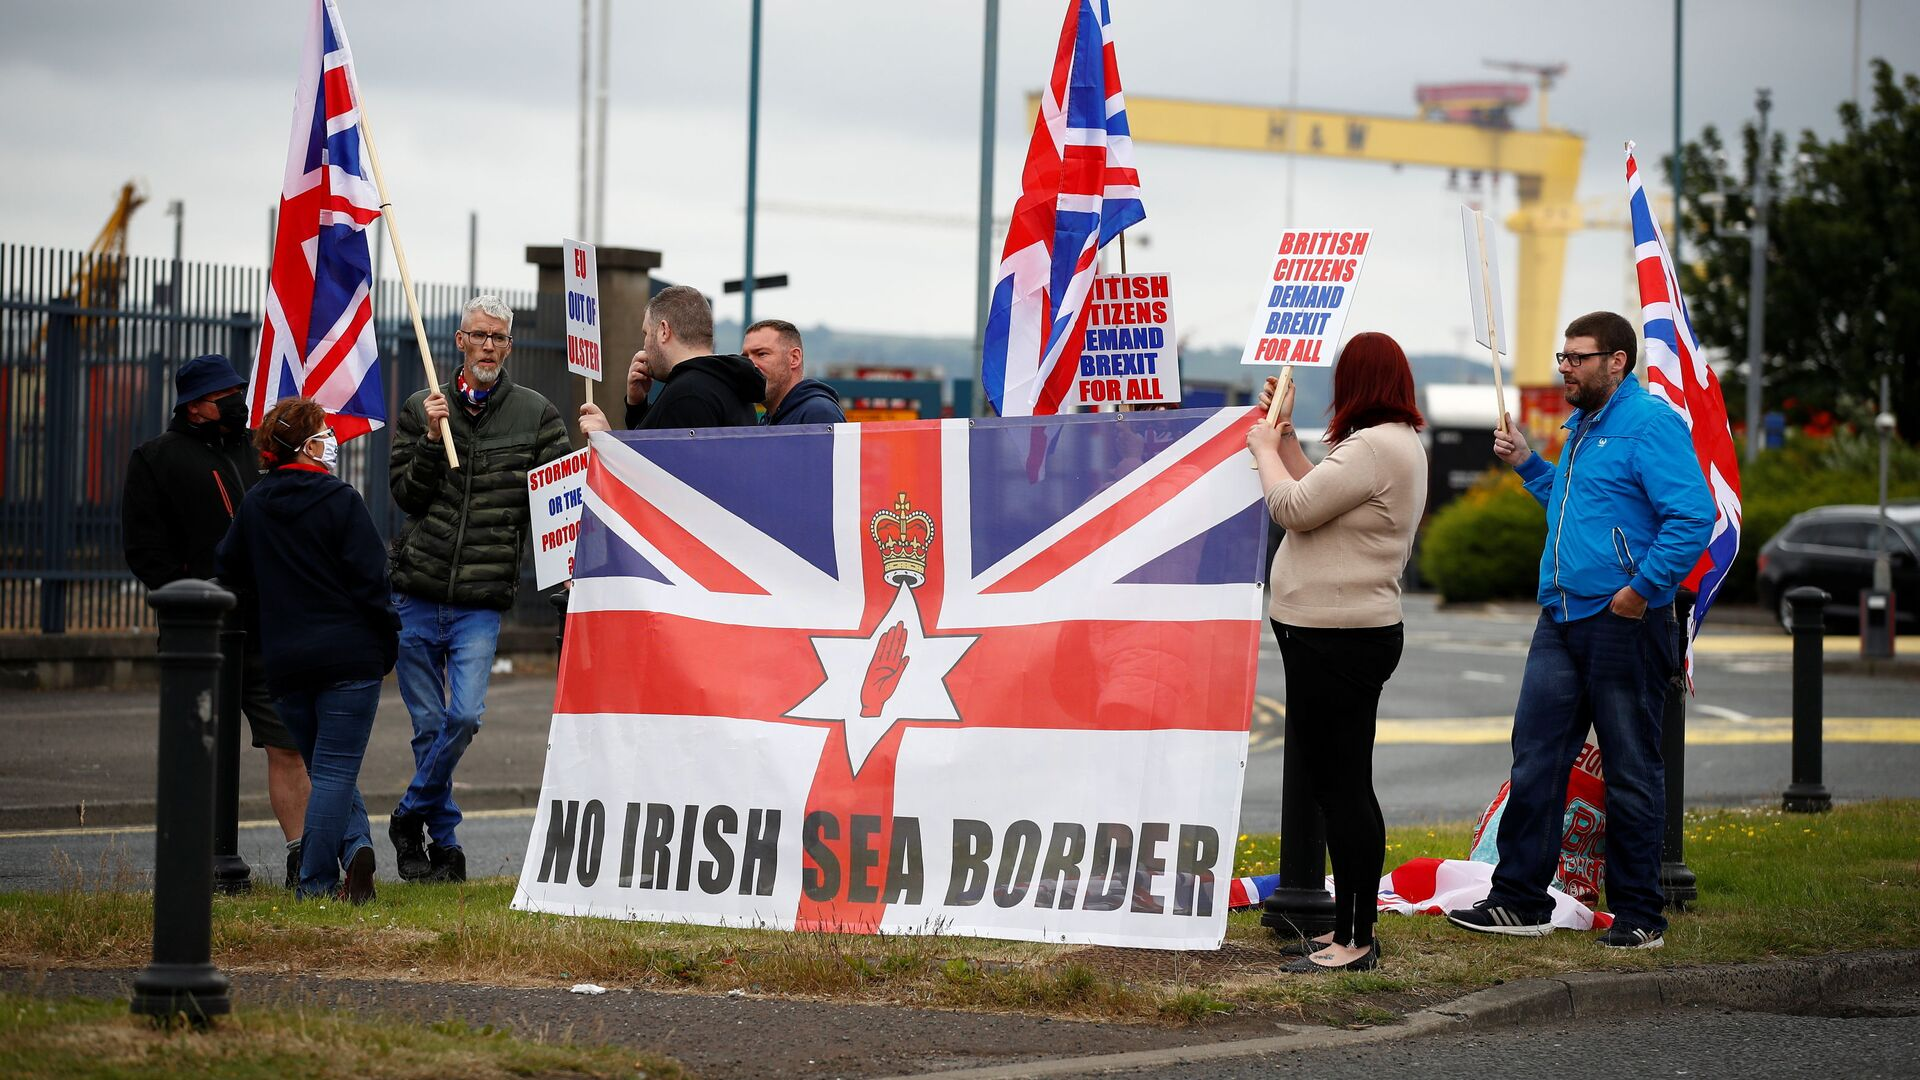 Loyalists protest against the Northern Ireland Brexit protocol at Belfast Harbour Estate, in Belfast, Northern Ireland, July 3, 2021 - Sputnik International, 1920, 14.09.2021